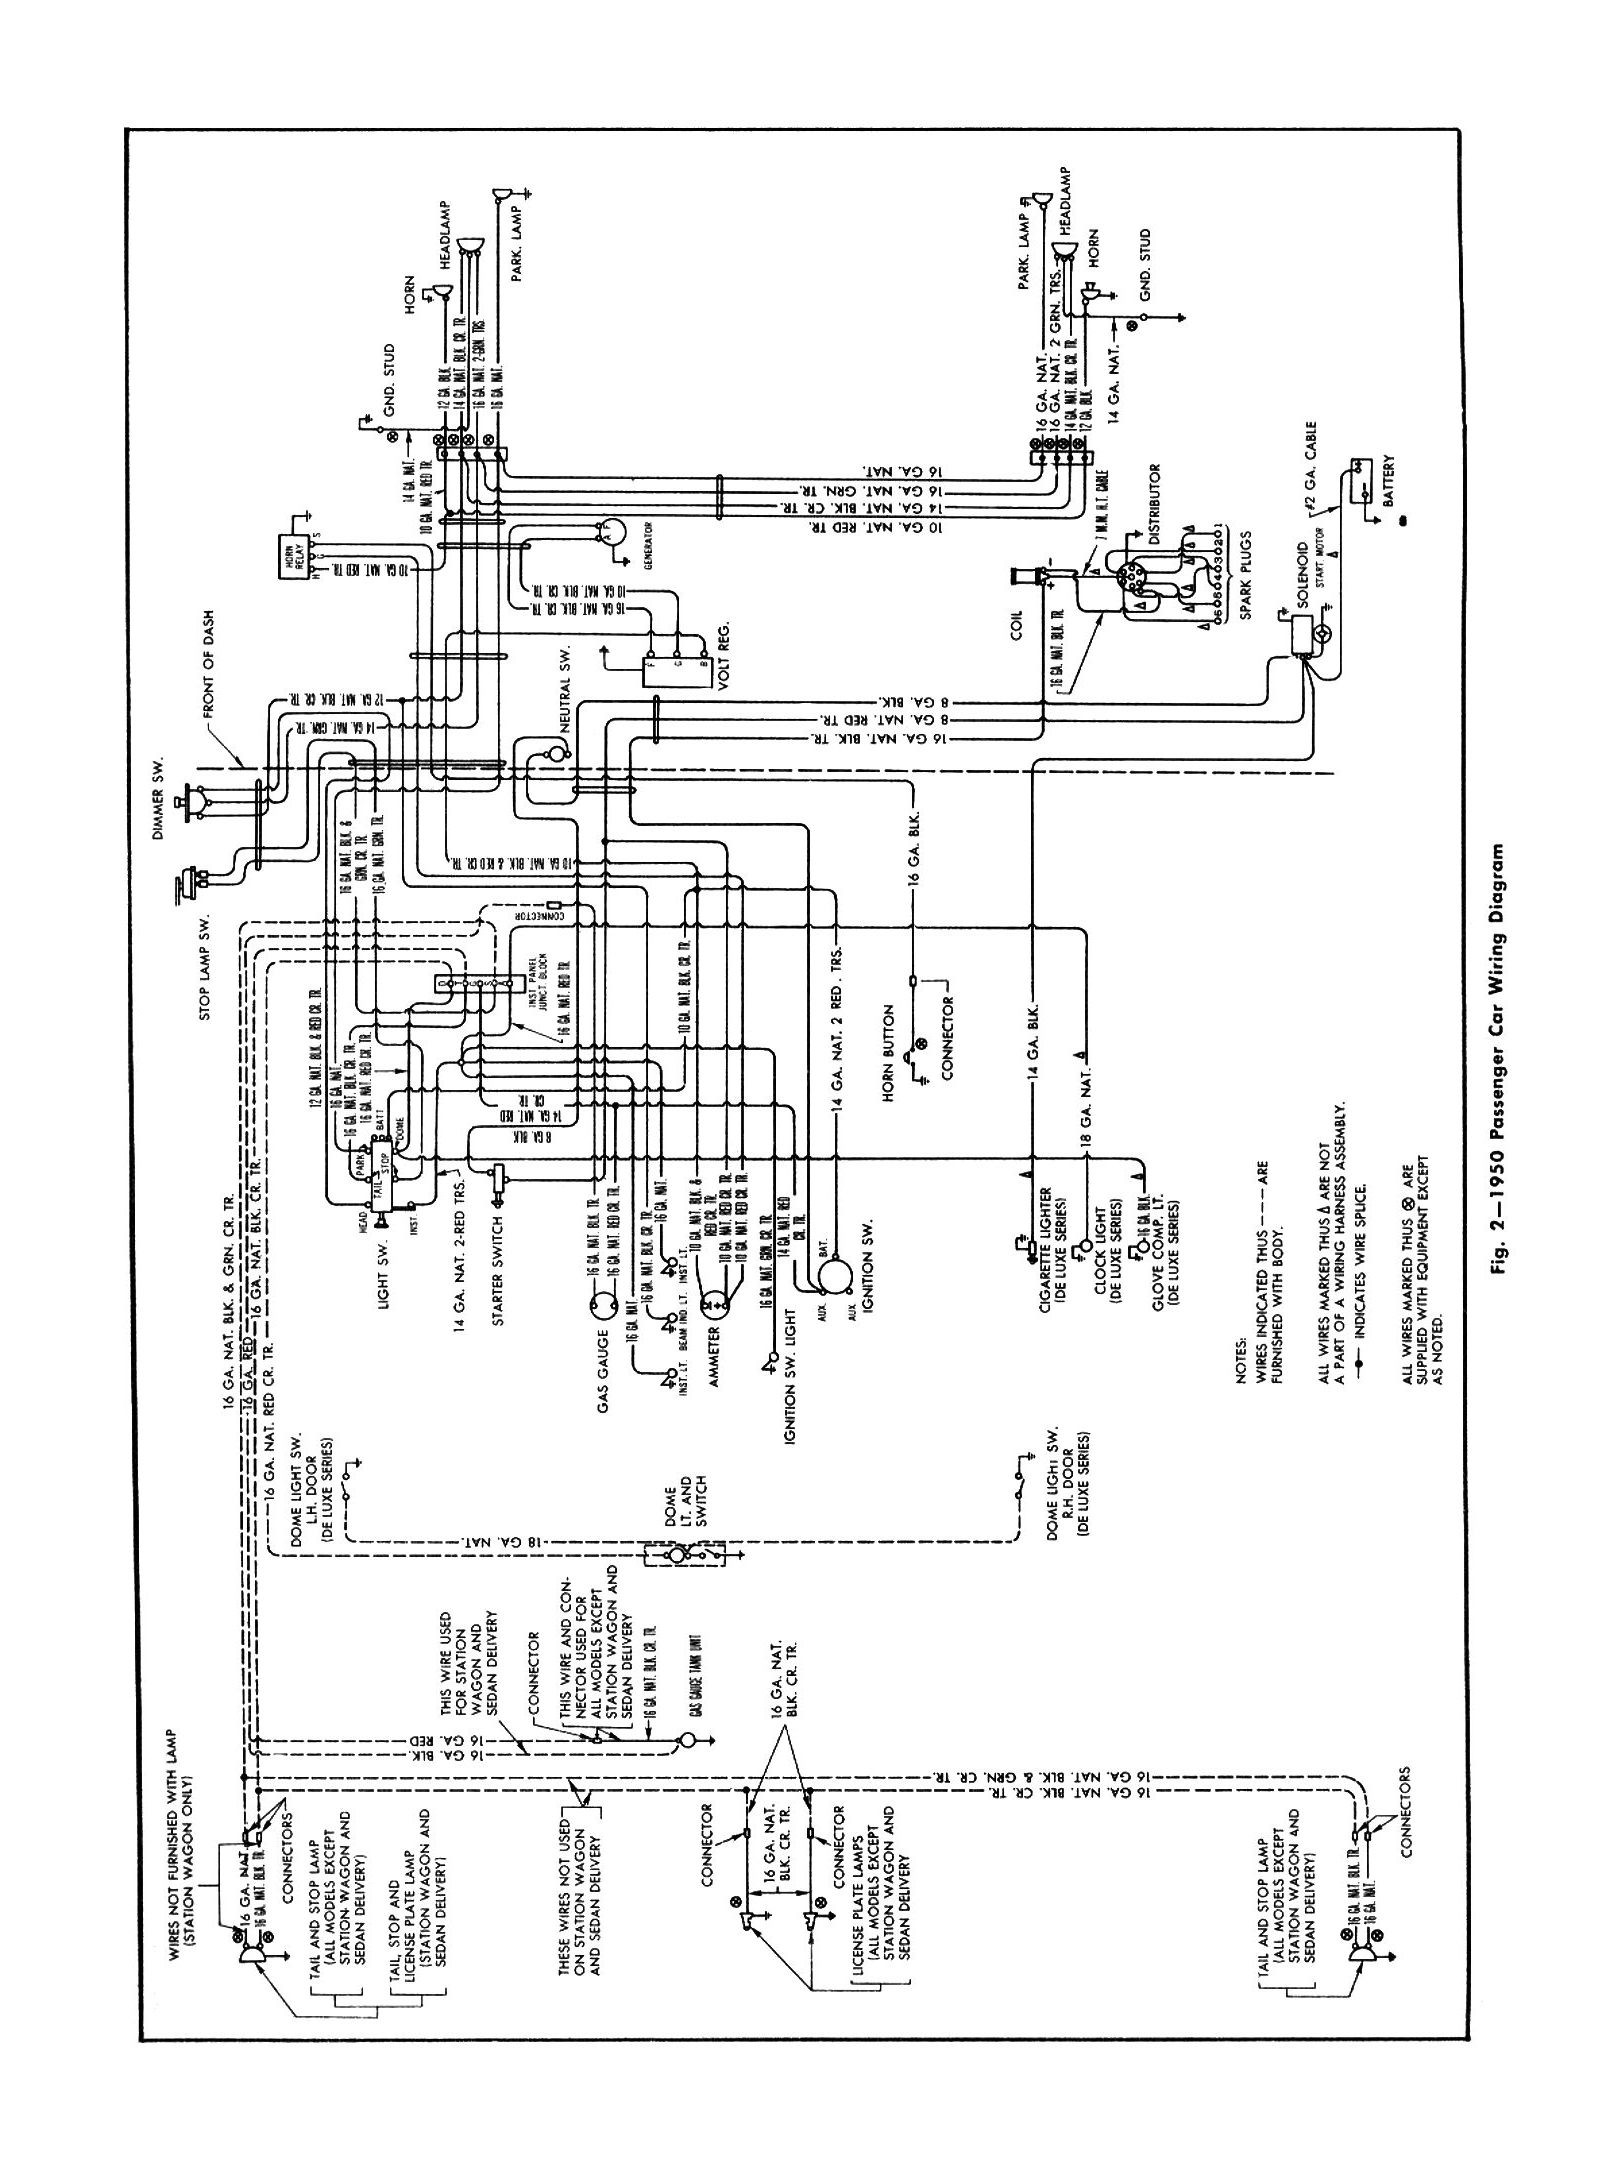 1131609 Ford 3000 Tractor Wiring Diagrams also IMnZy1wcOpZvb8Wm besides Chevy Voltage Regulator Condenser Wiring Diagram further 02 Mitsubishi Alternator Wiring Diagram Pdf together with LU9p 6606. on lucas alternator wiring diagram